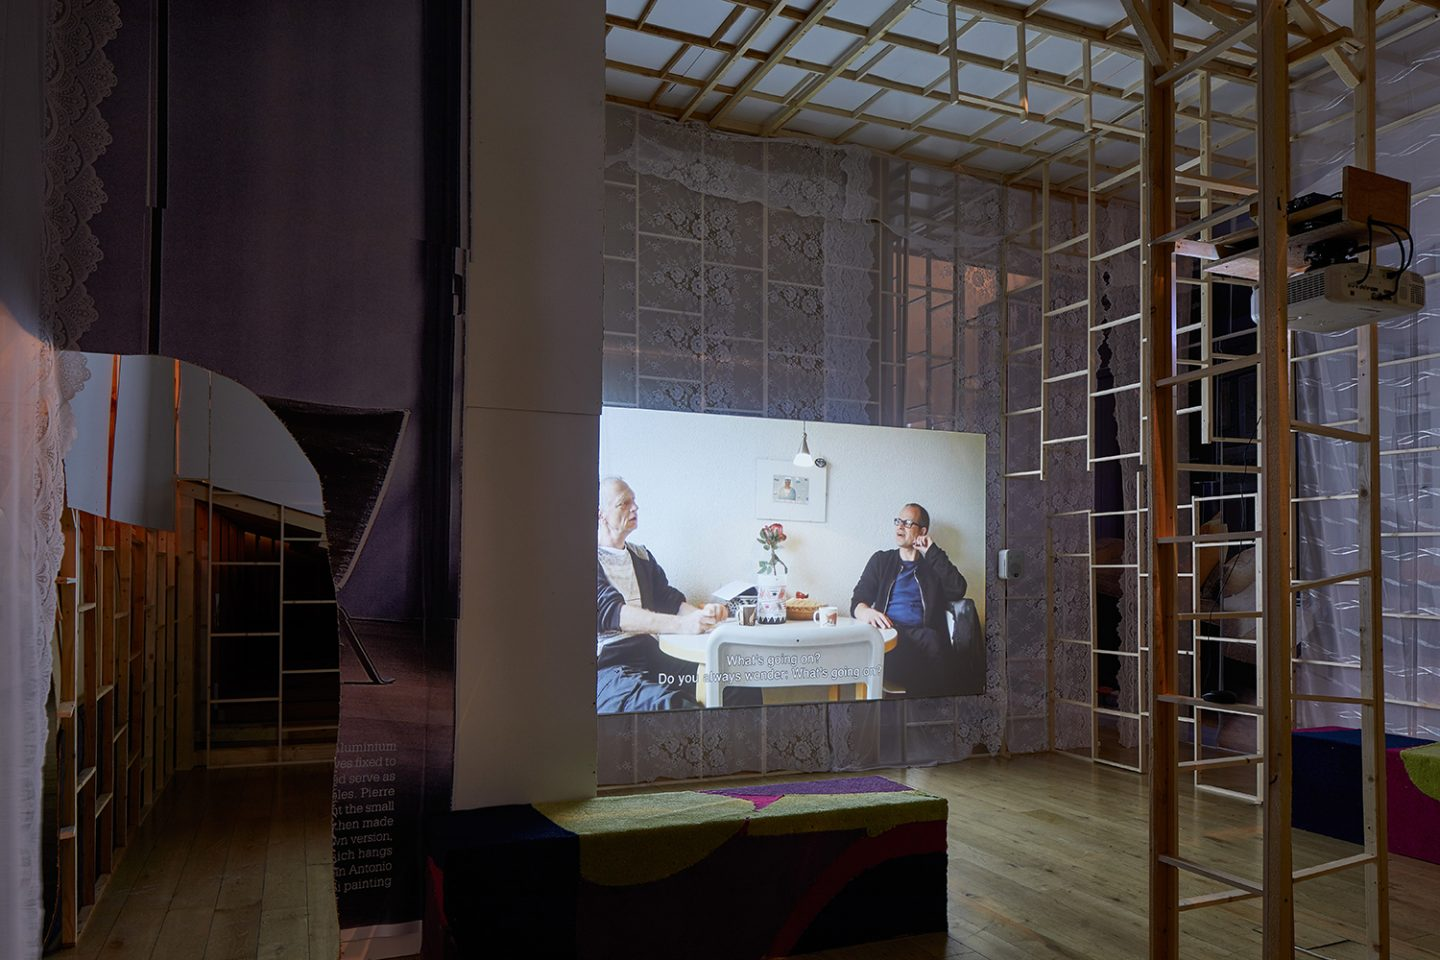 Erik van Lieshout, Janus, 2012. Exhibition view at the South London Gallery, 2017. HD film, colour, sound, 50 minutes. Wood, carpet, lace curtains. Courtesy the artist, Maureen Paley, London and Galerie Guido W. Baudach, Berlin; Annet Gelink Gallery, Amsterdam. Photo: Andy Stagg.